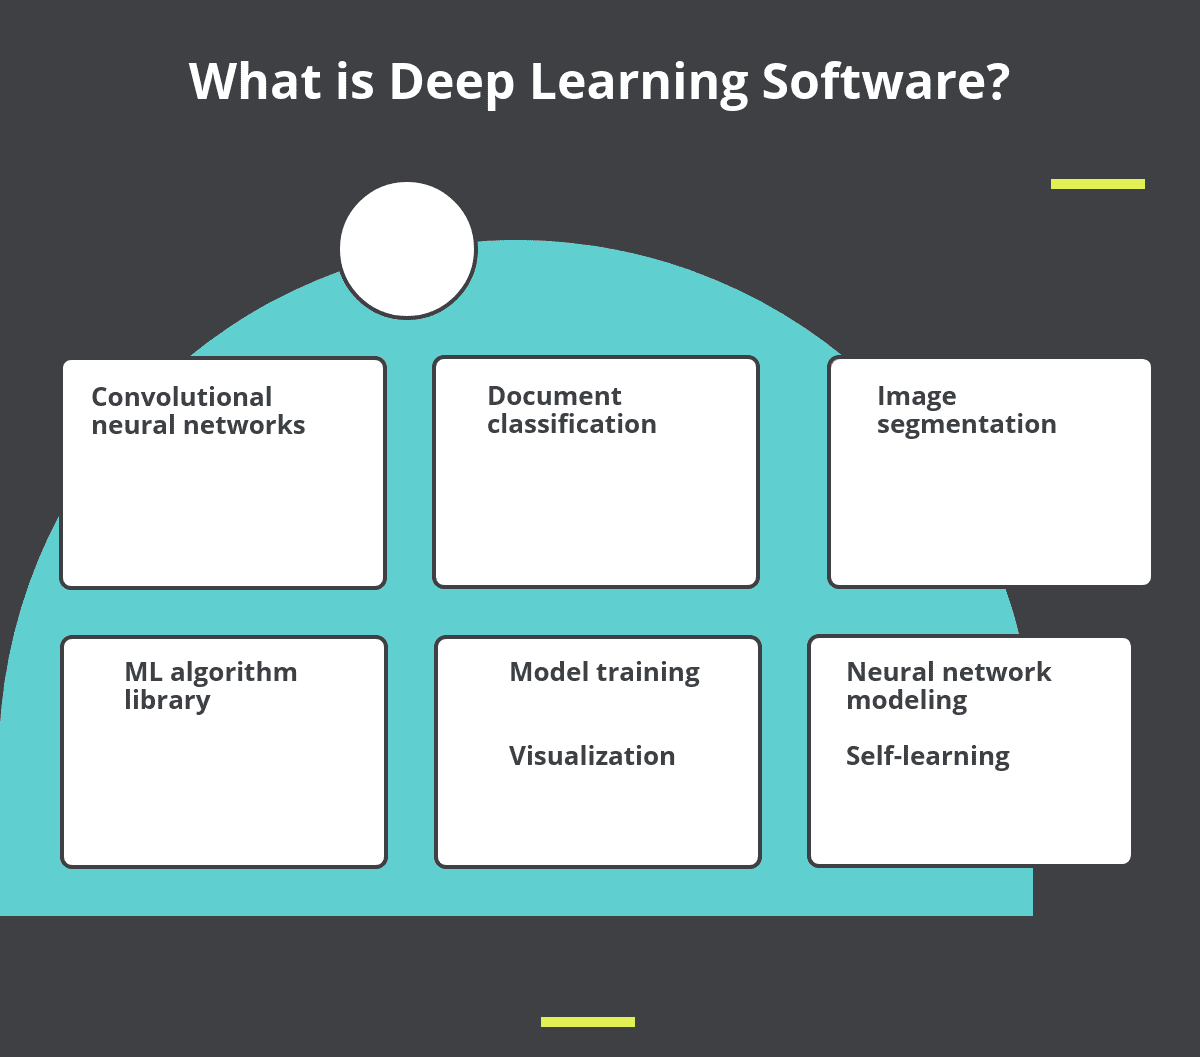 Top 15 Deep Learning Software - Compare Reviews, Features, Pricing